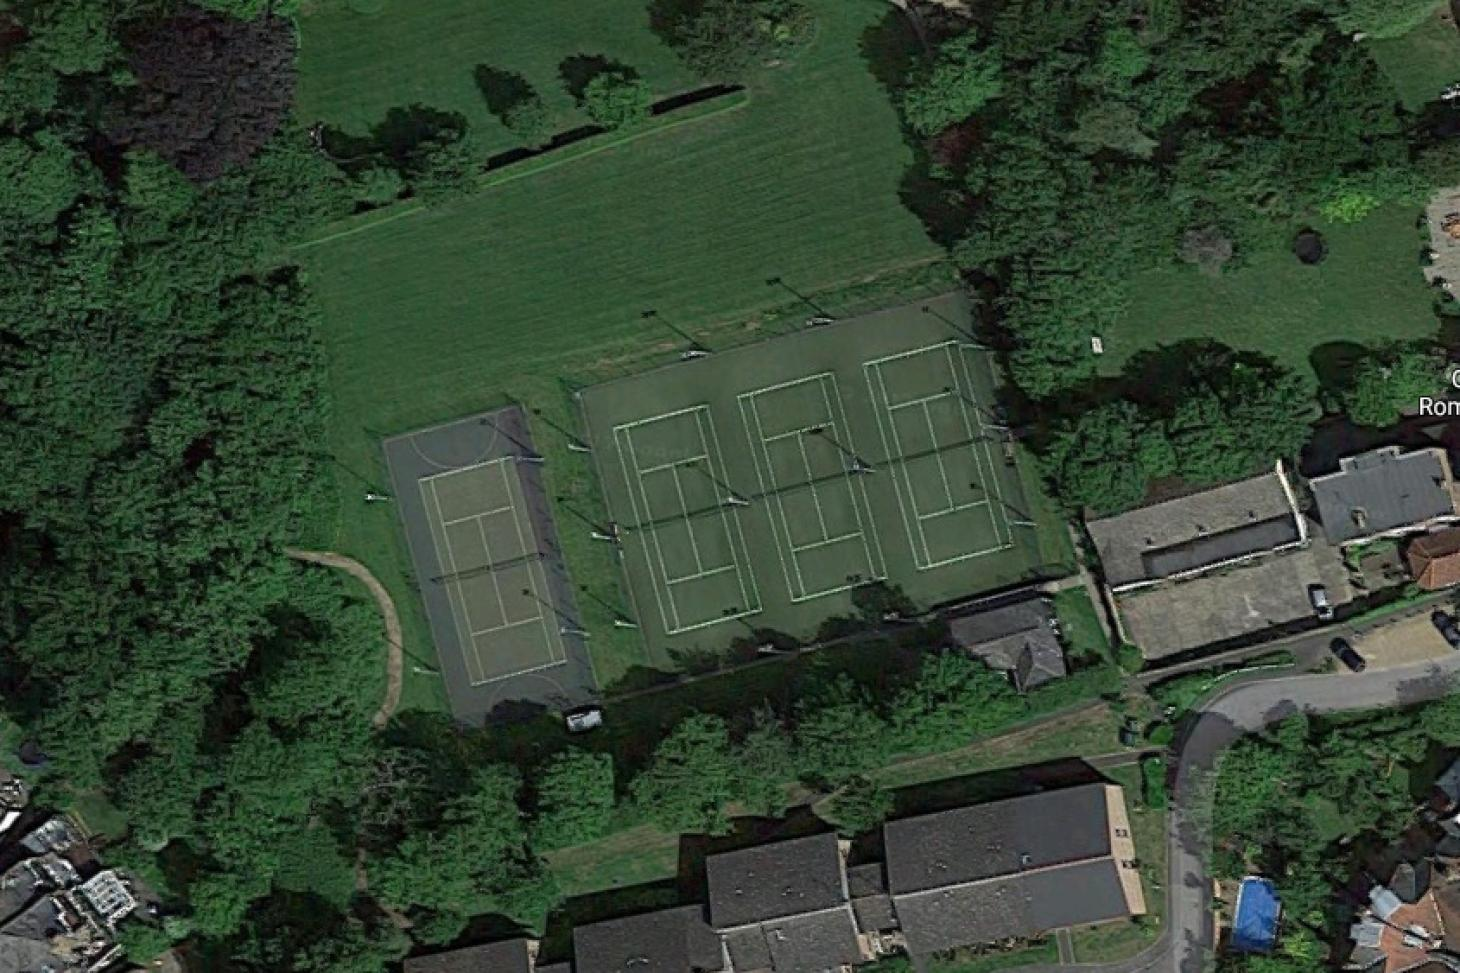 Muswell Hill Methodist LTC Outdoor | Astroturf tennis court